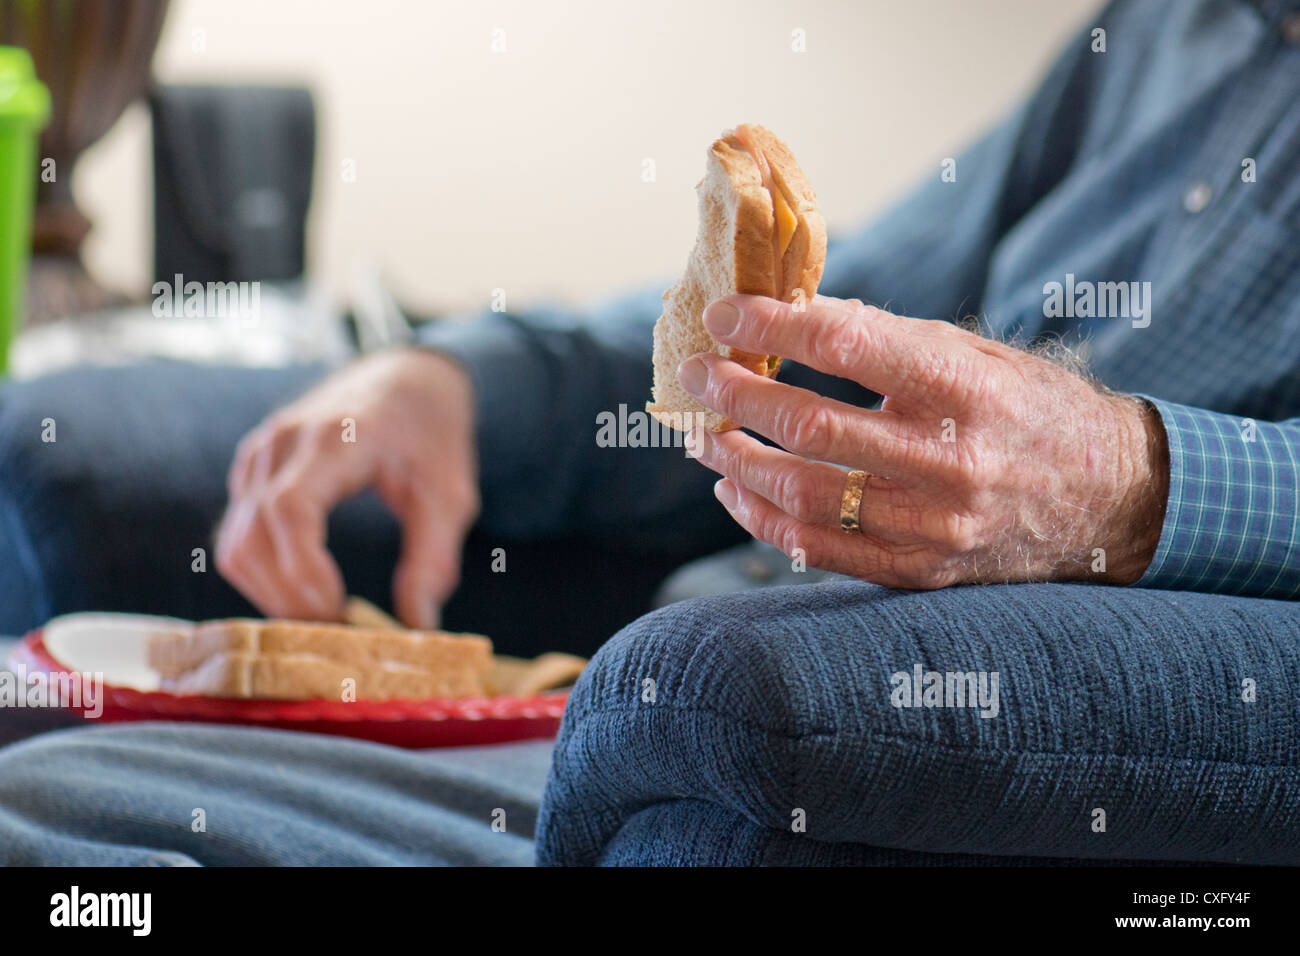 An elderly man, eats sandwiches on a paper plate while sitting in his recliner. Closeup view of hands. USA - Stock Image